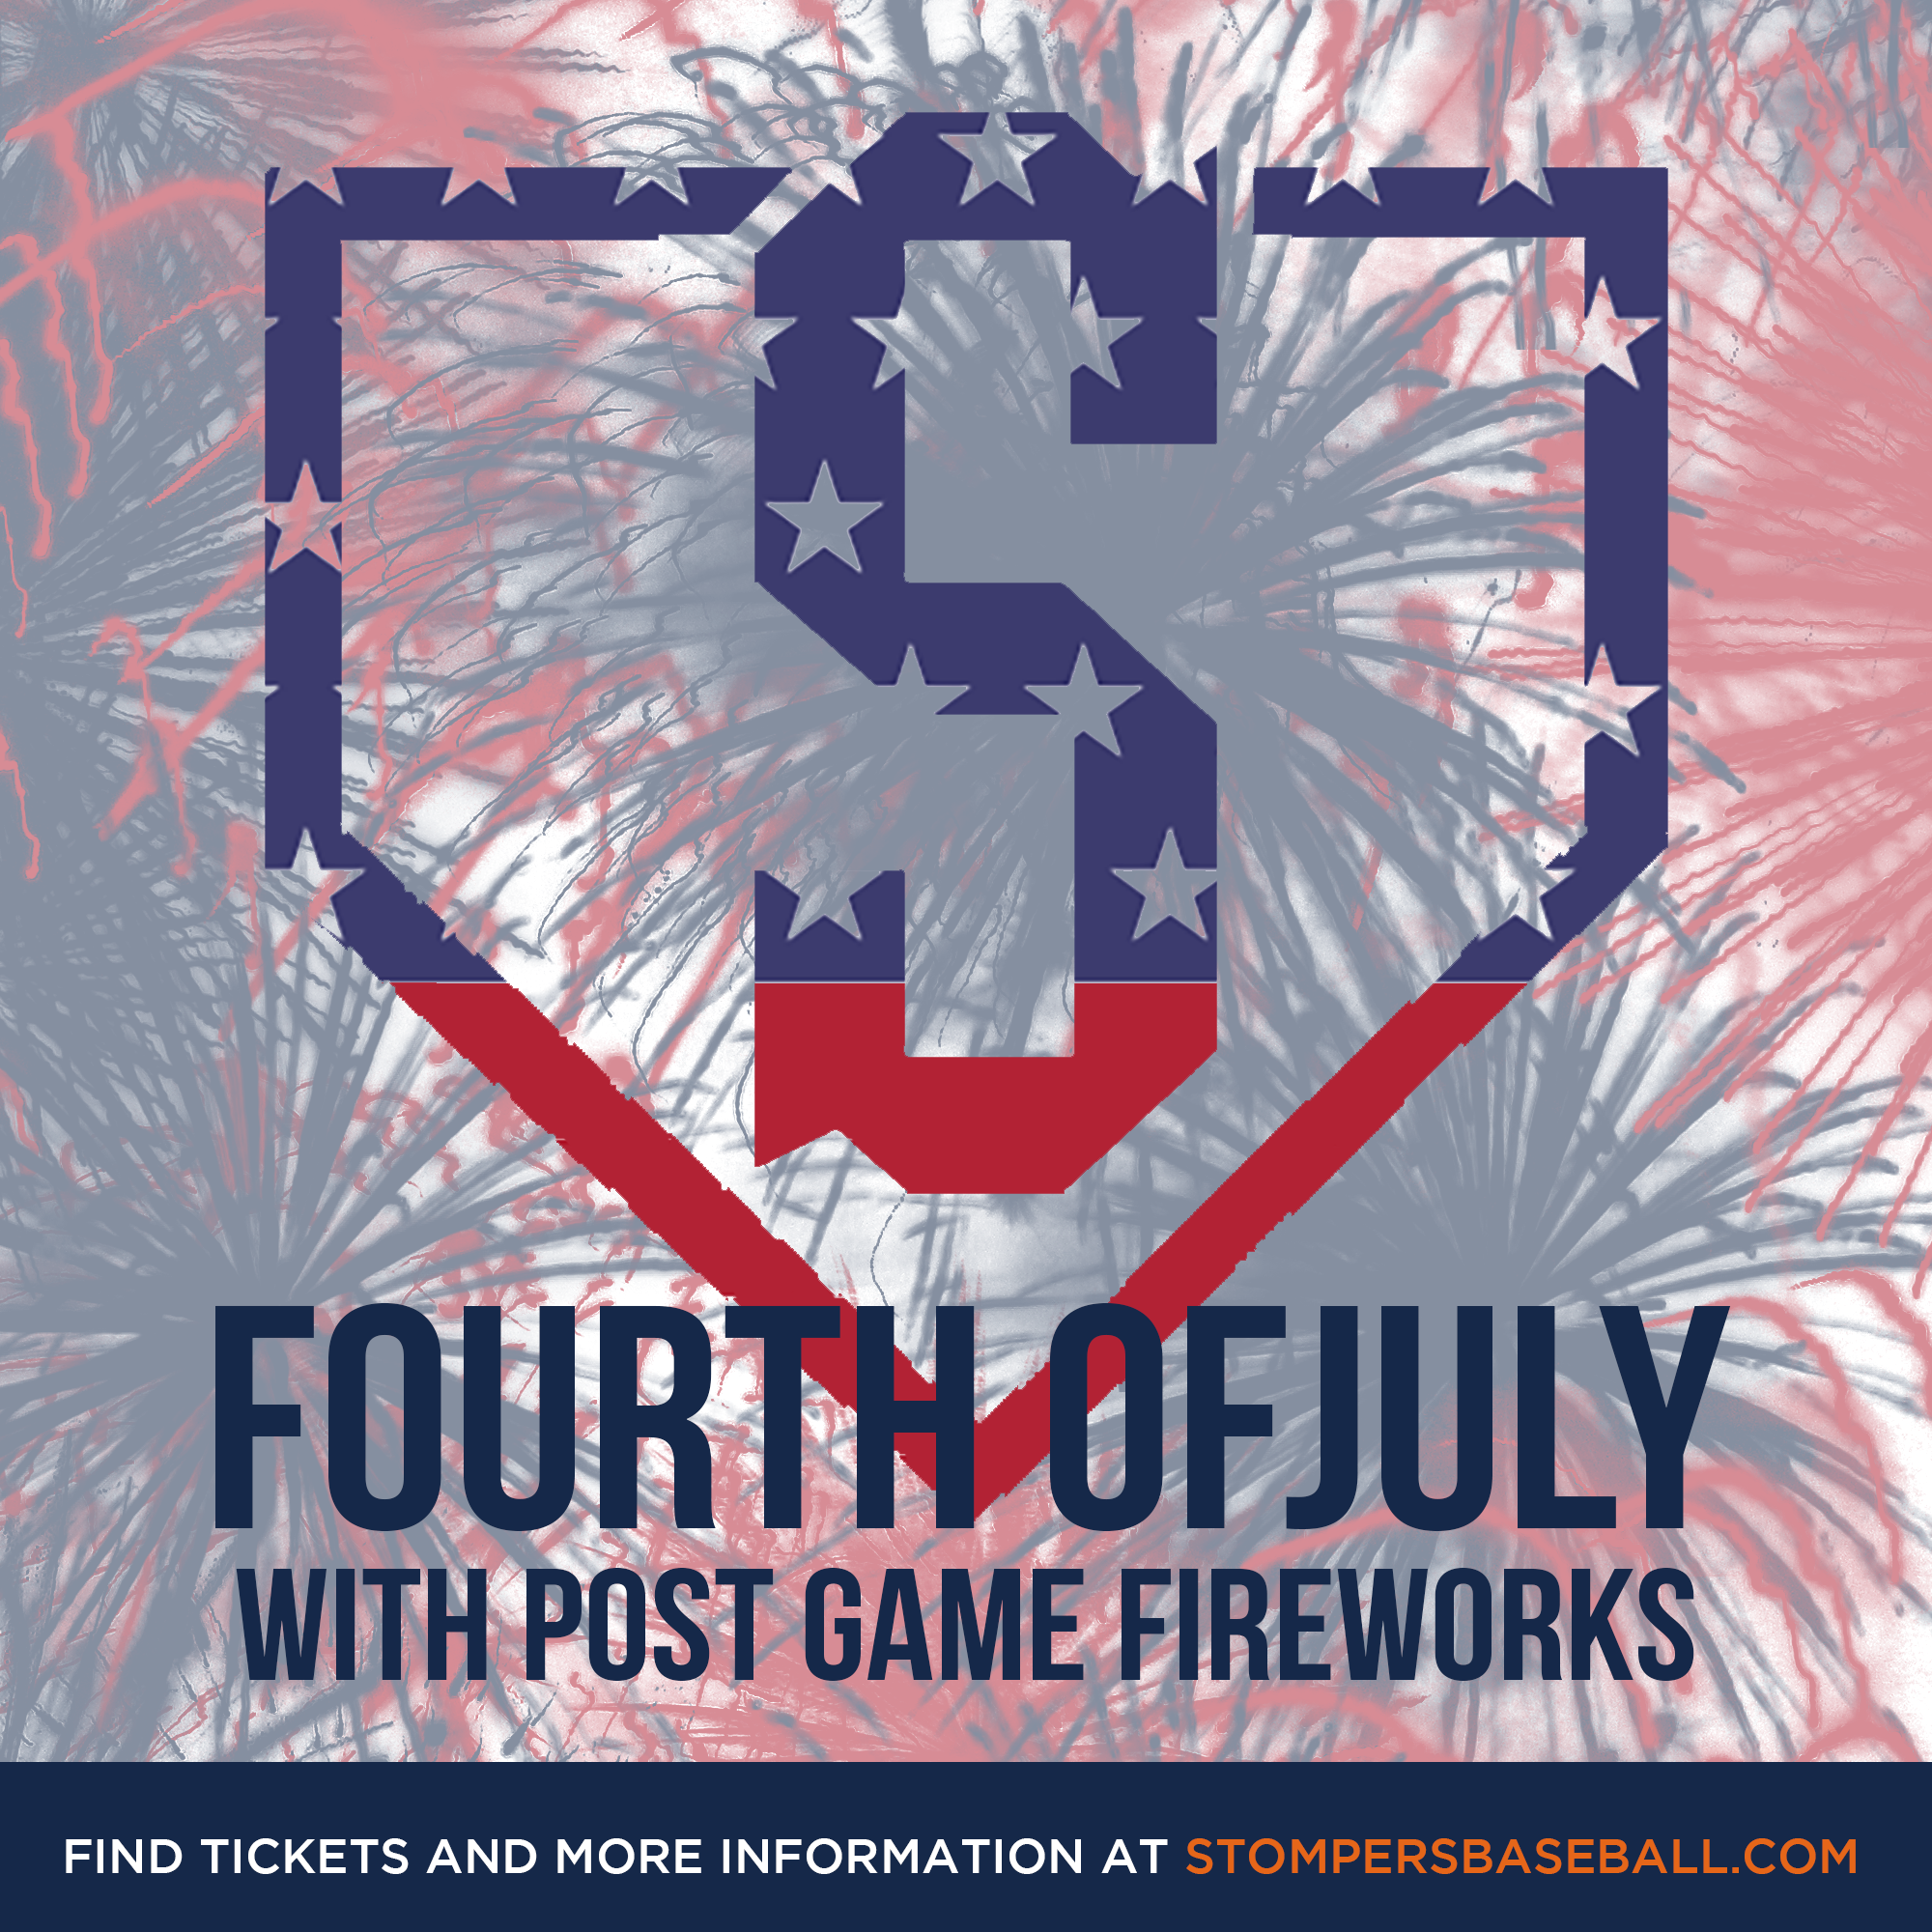 July 4: Fourth of July - Bring your own blanket and patriotic pride for the Fourth of July at Palooza Park Arnold field! After the game stay a little longer and watch the fireworks with a perfect view!